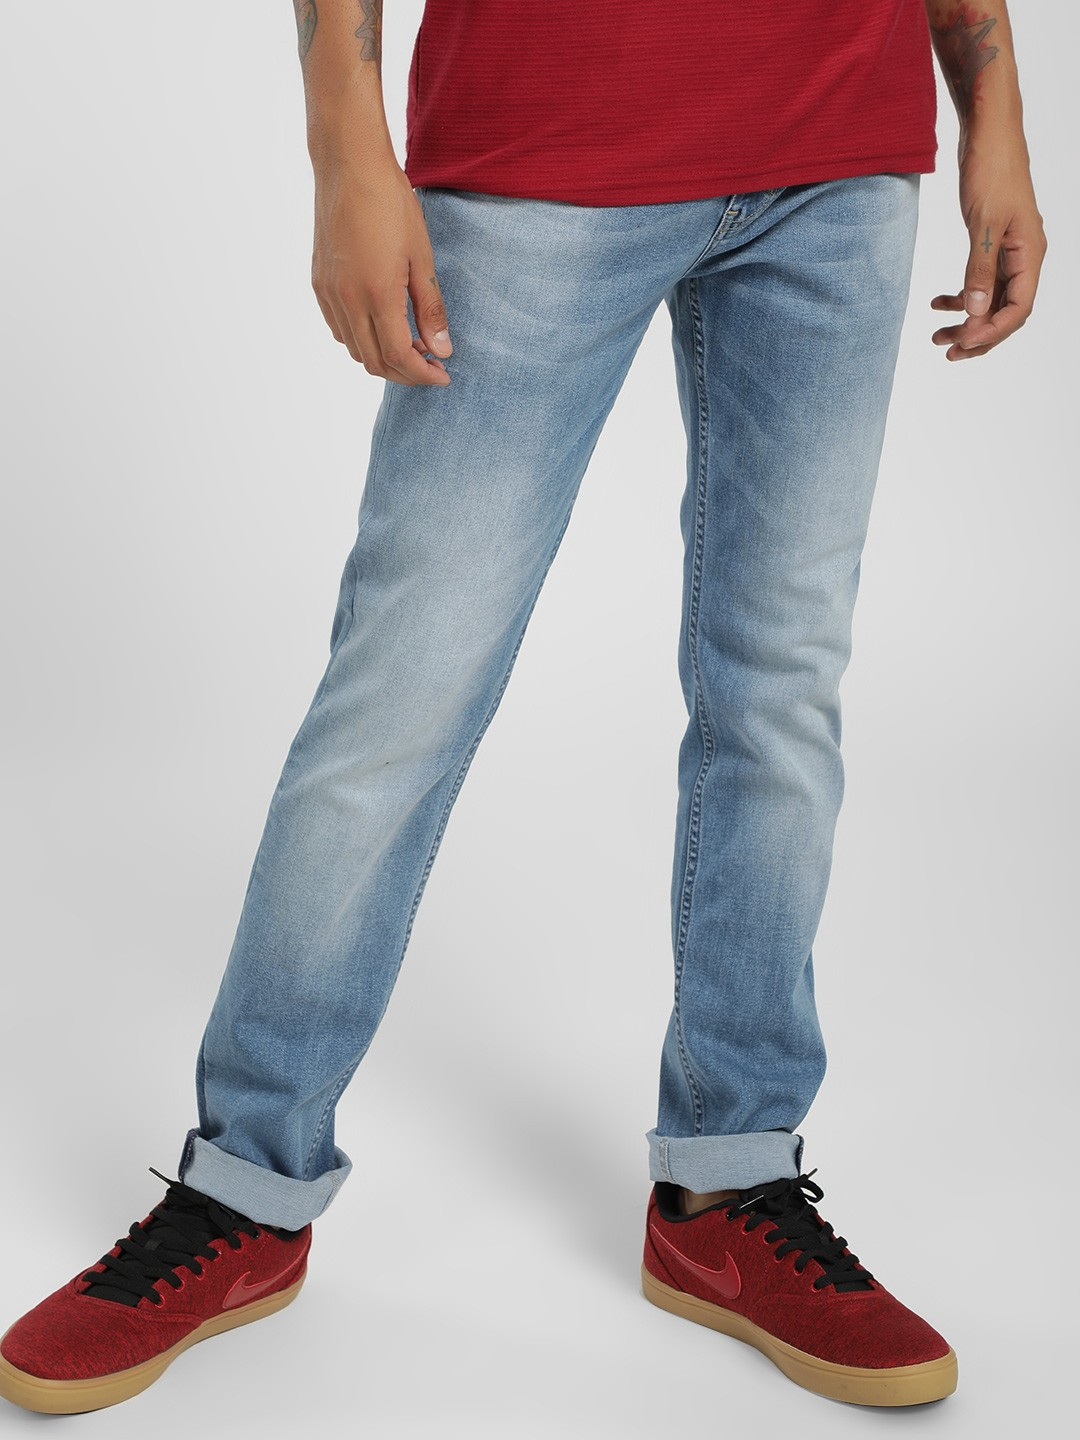 Lee Cooper Blue Light Wash Slim Jeans 1